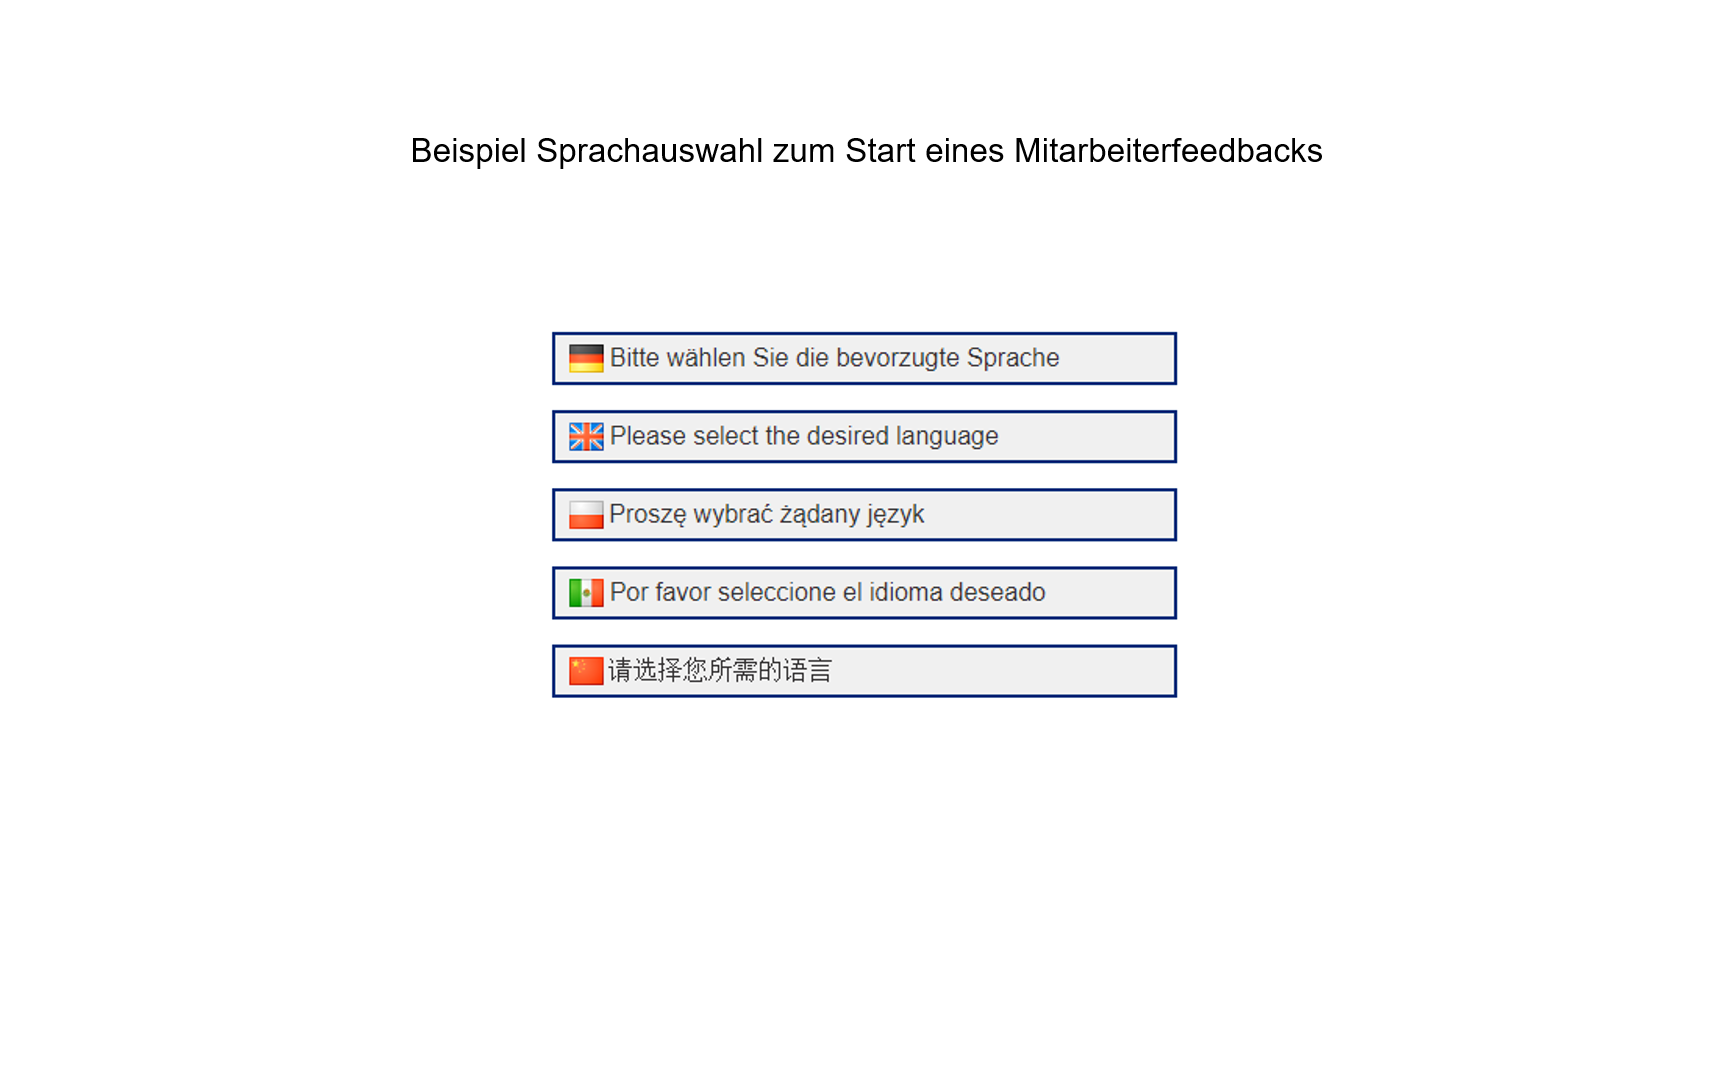 MAB international Sprachauswahl Fragebogen